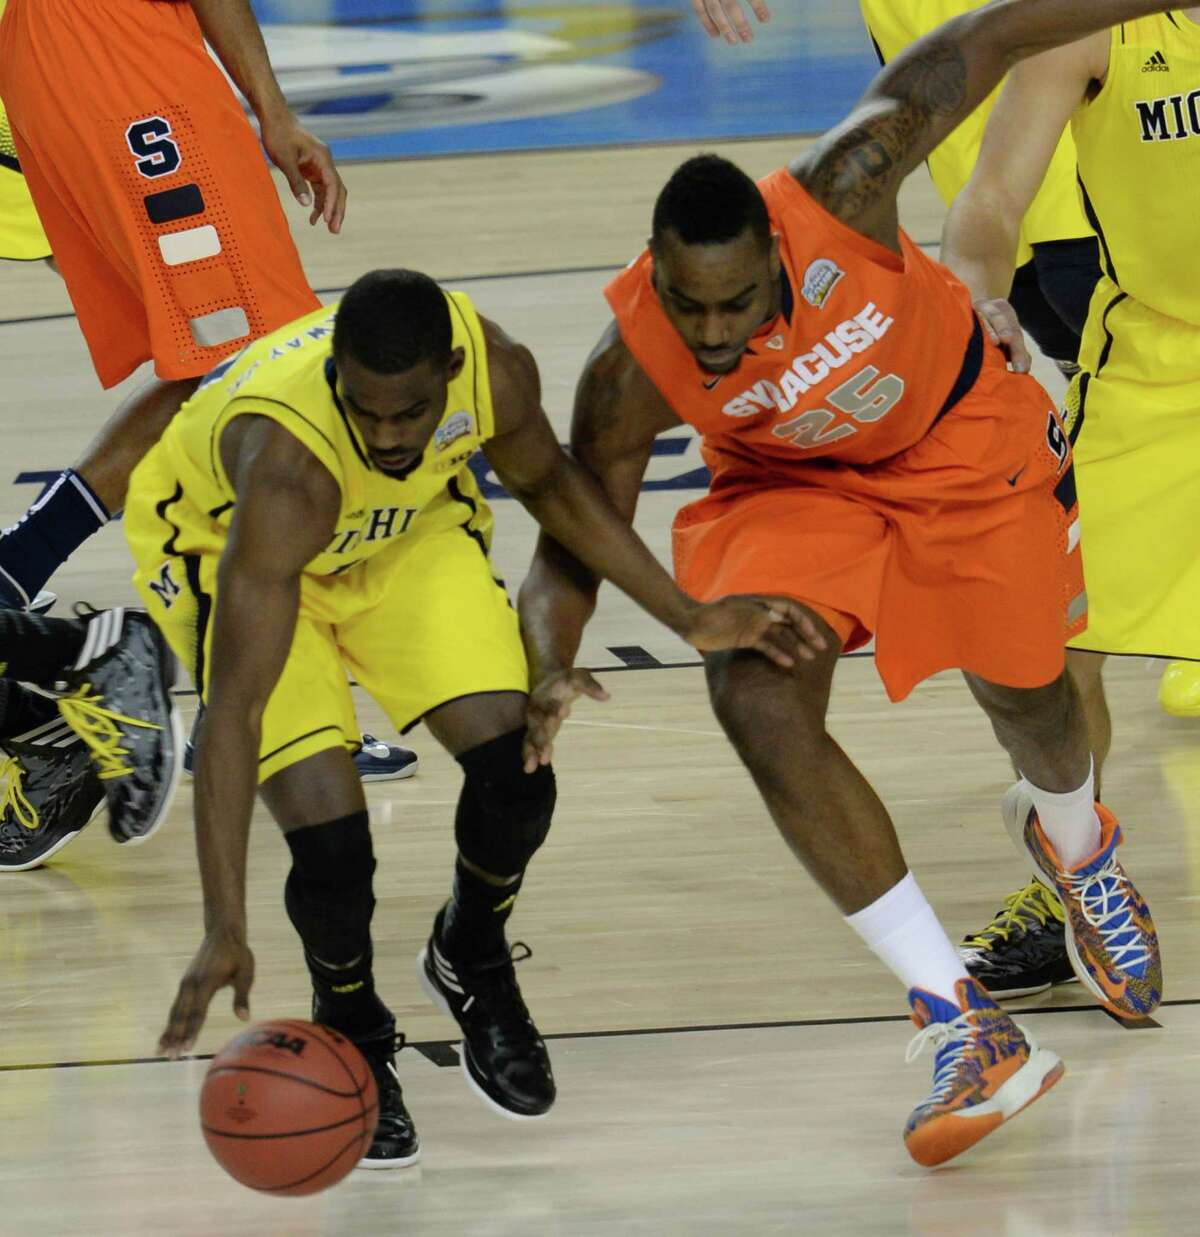 Tim Hardaway Jr. (10) of Michigan and Rakeem Christmas (25) of Syracuse battle for a loose ball in the first half in an NCAA Final Four semifinal at the Georgia Dome in Atlanta, Georgia, Saturday, April 6, 2013. (Drew Tarter/MCT)